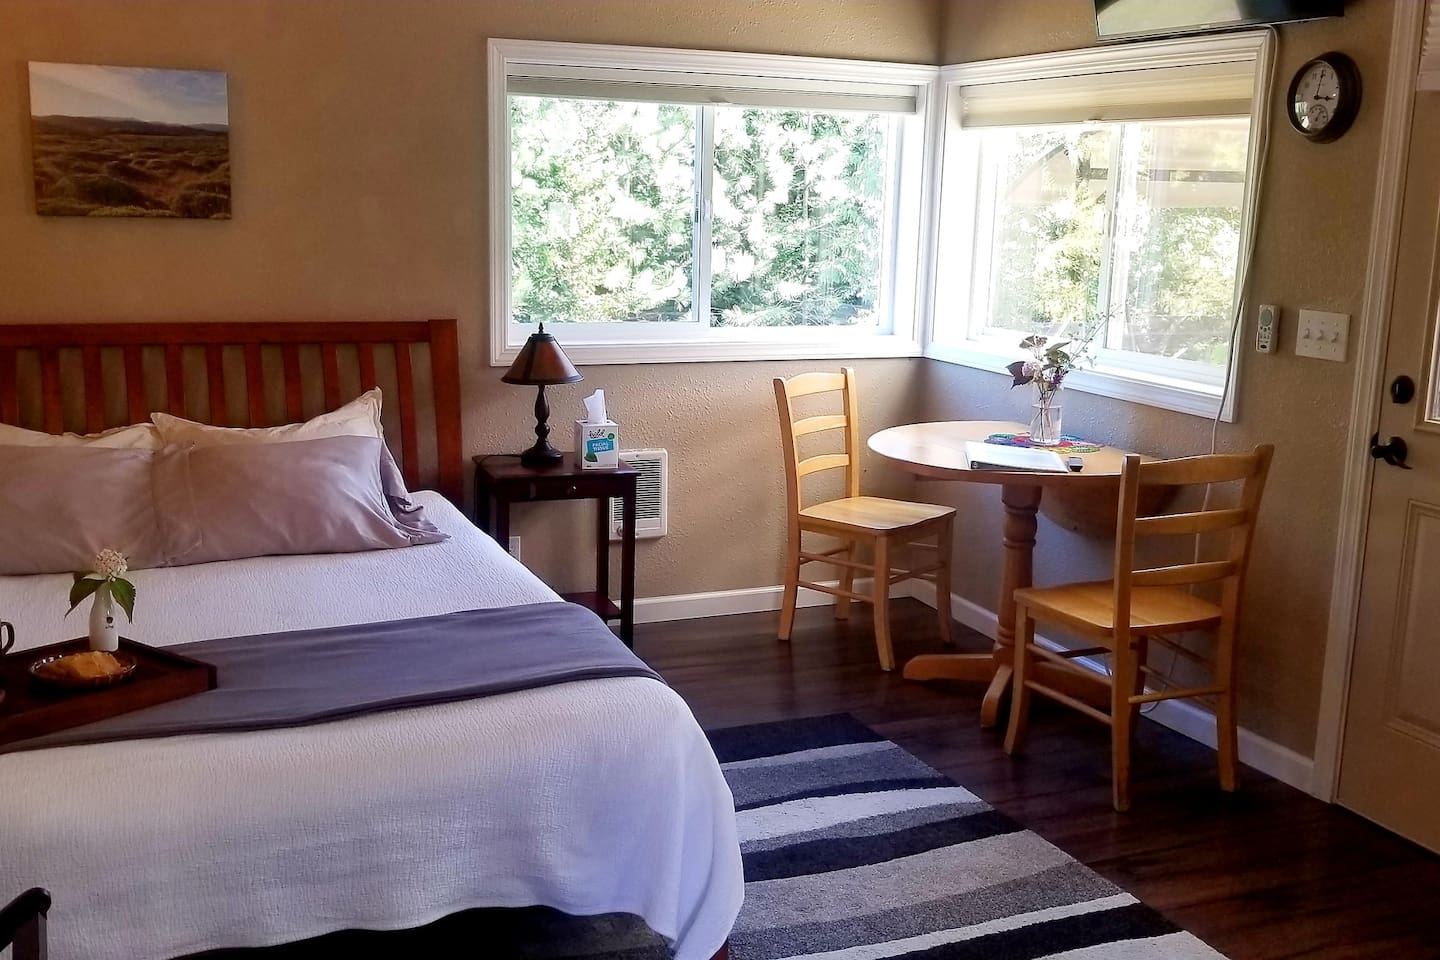 Cozy and comfortable accommodations. The television is mounted on the wall above the table and in view of the bed.